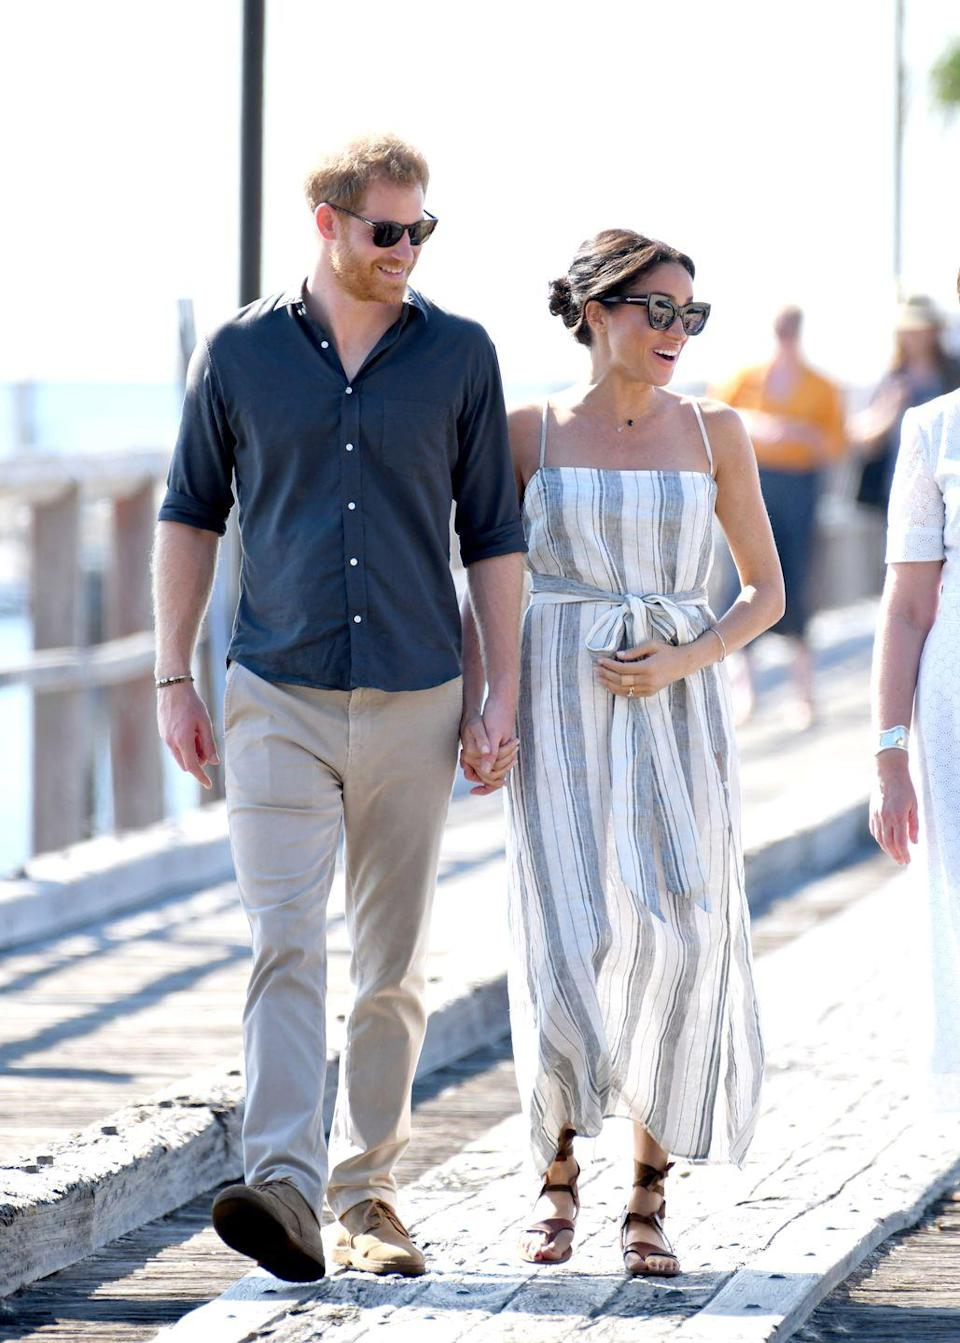 <p>The Royal couples visited the Kingfisher Bay Jetty on Fraser Island. Meghan and Harry greeted the crowd and received multiple gifts for their expected child. </p>